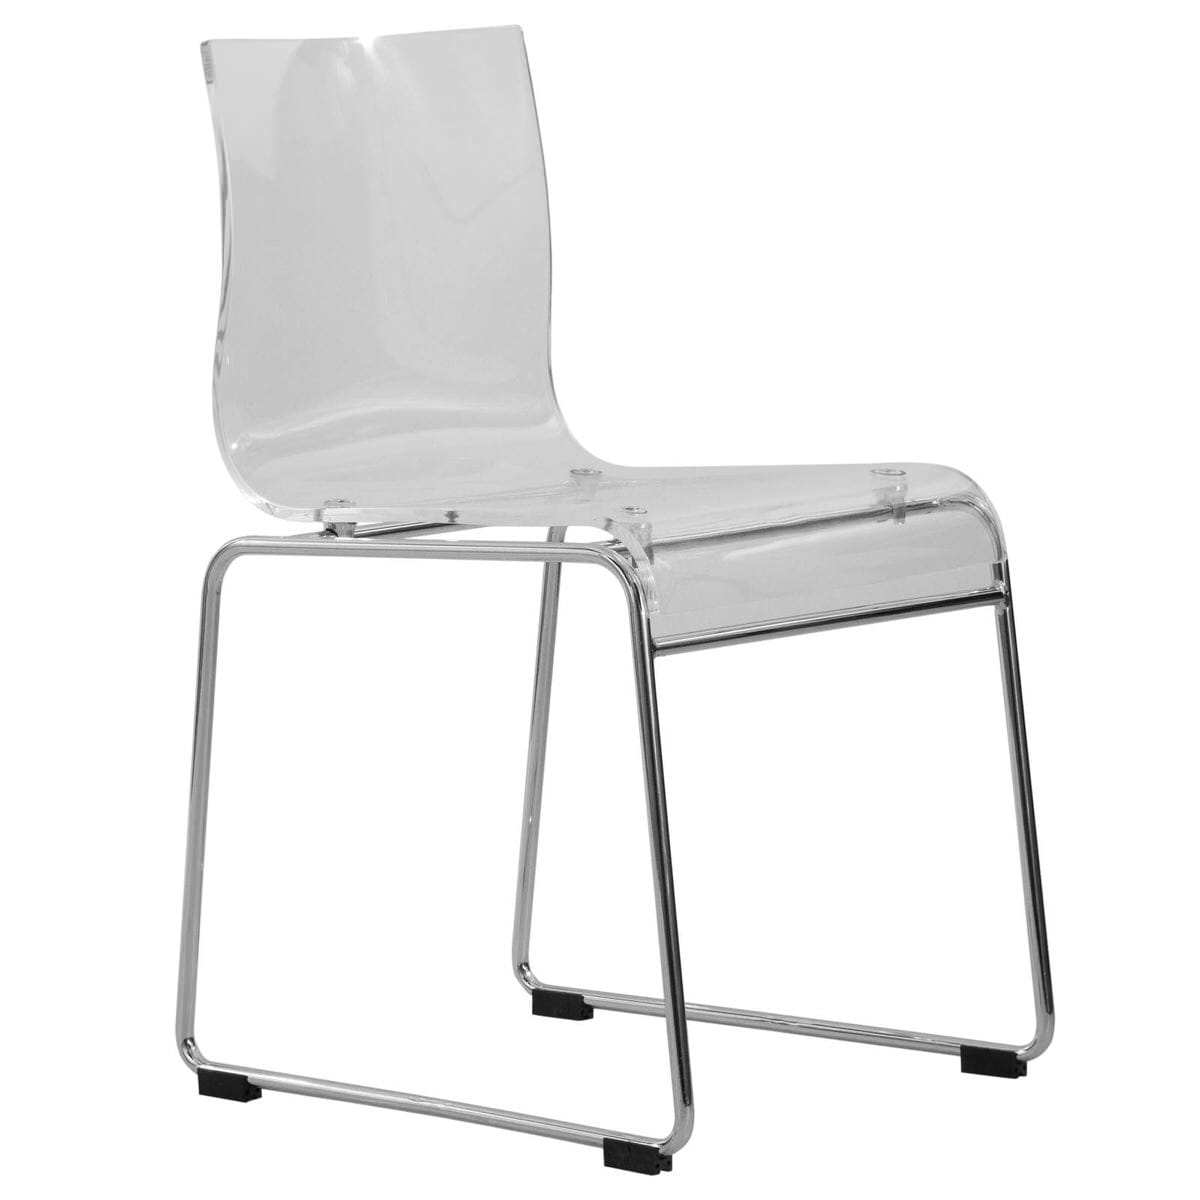 Awe Inspiring Lima Modern Clear Acrylic Chair By Leisuremod Spiritservingveterans Wood Chair Design Ideas Spiritservingveteransorg